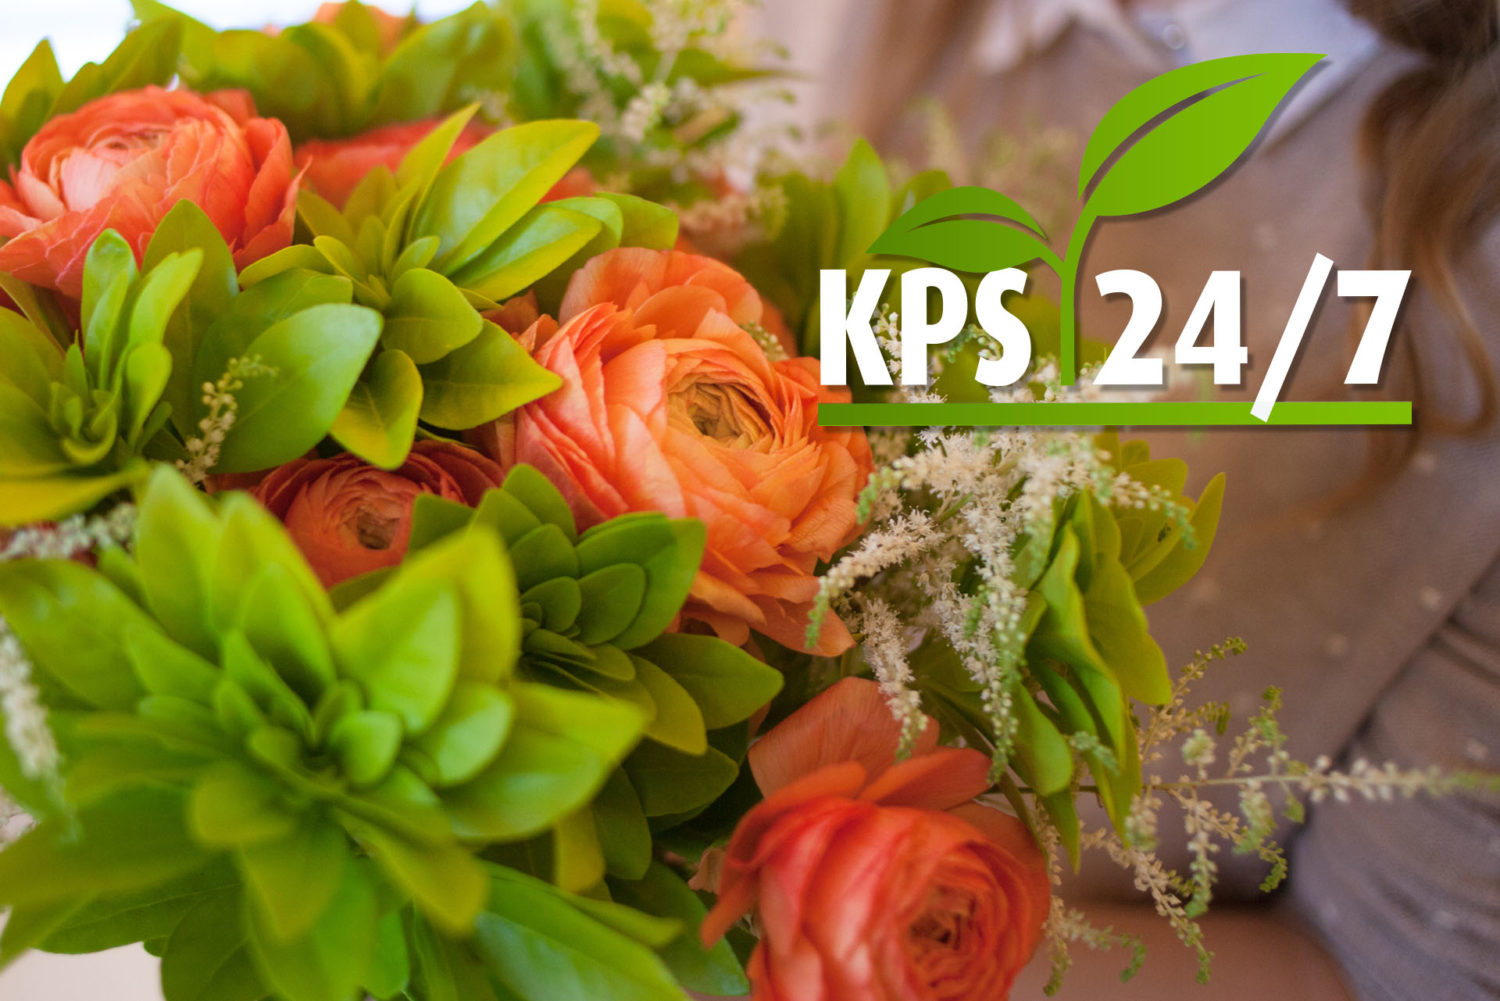 By expanding to include flowers, the supply offered by KPS 24/7 has become significantly broader and customers now have a complete package of products at their fingertips.